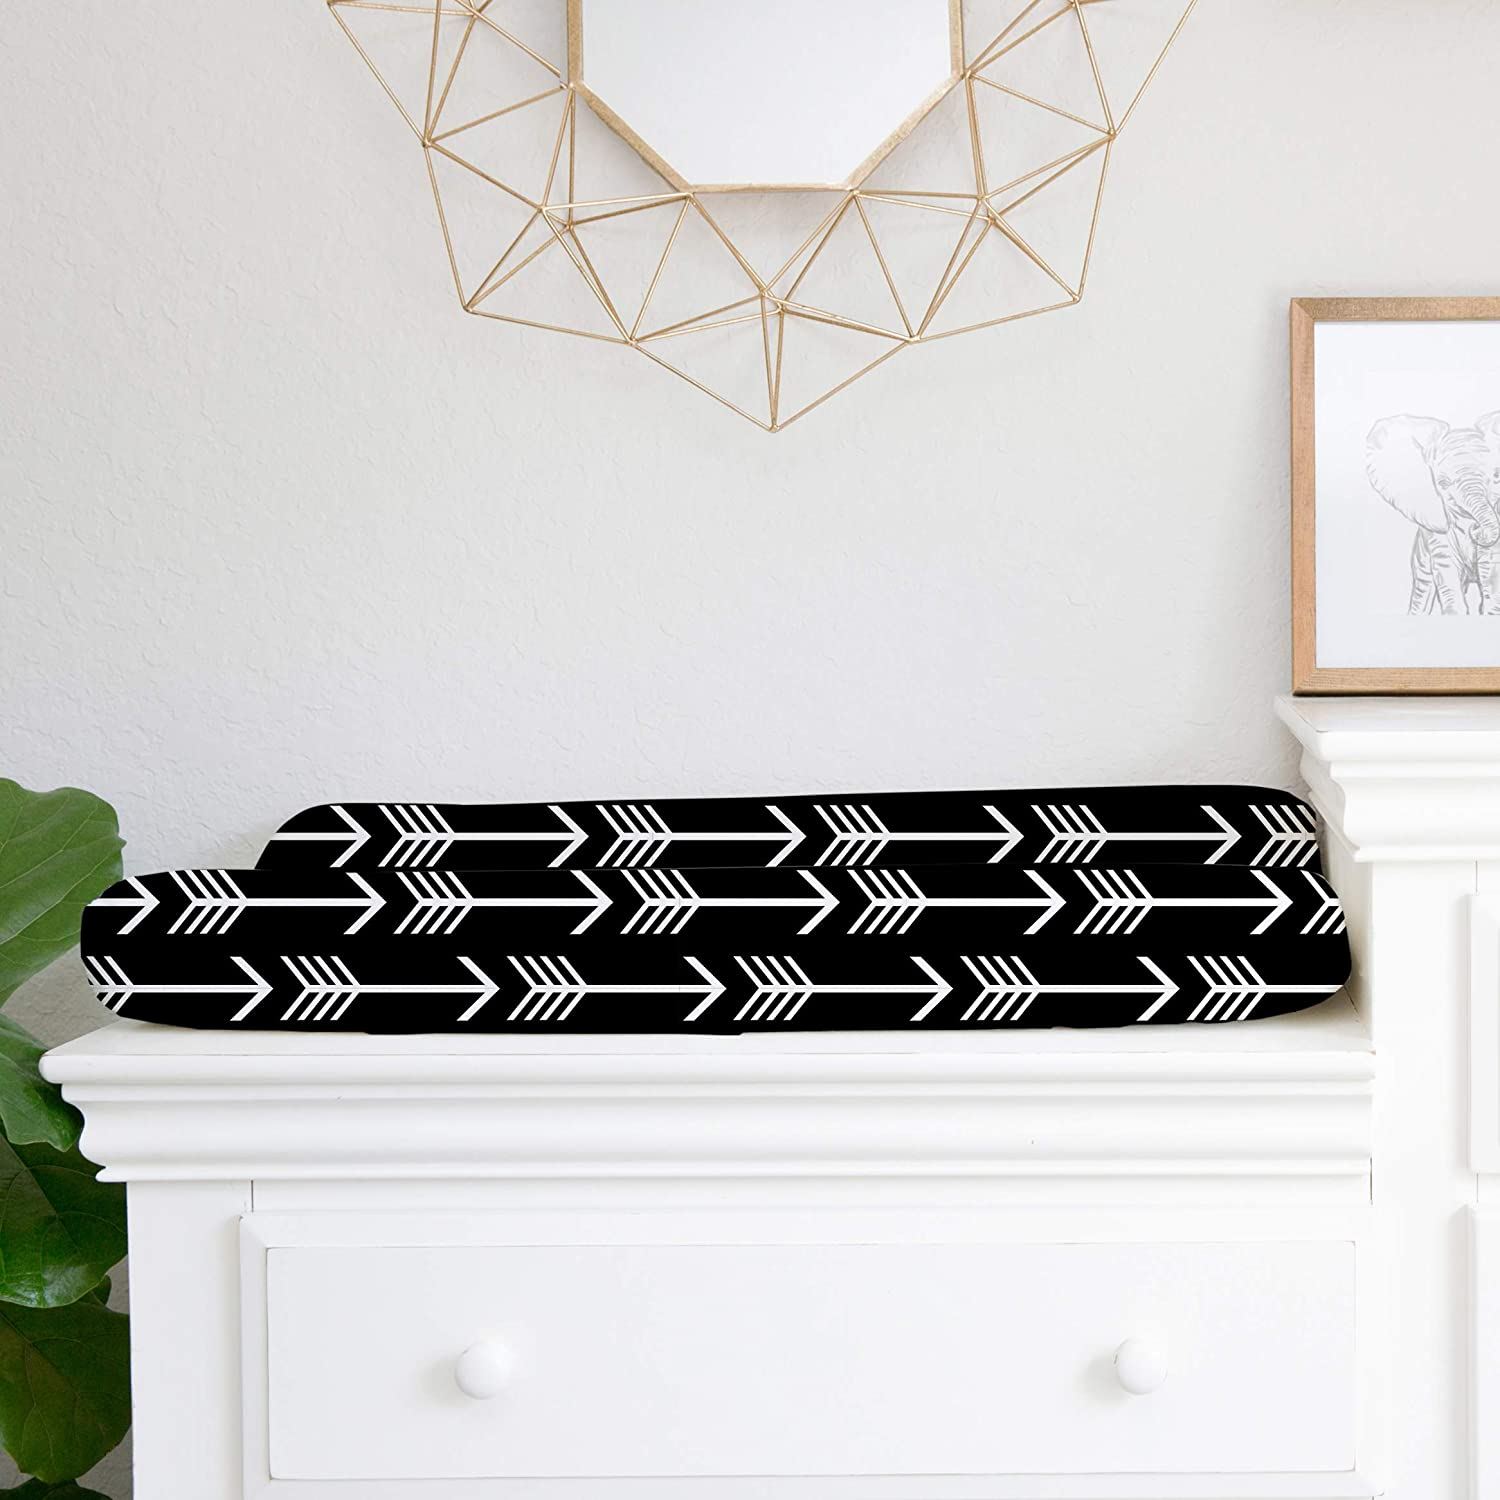 Baby Changing Table Covers -100/% Cotton Changing pad Cover boy Girl Black White Arrows Woodland Nursery Decor by JLIKA